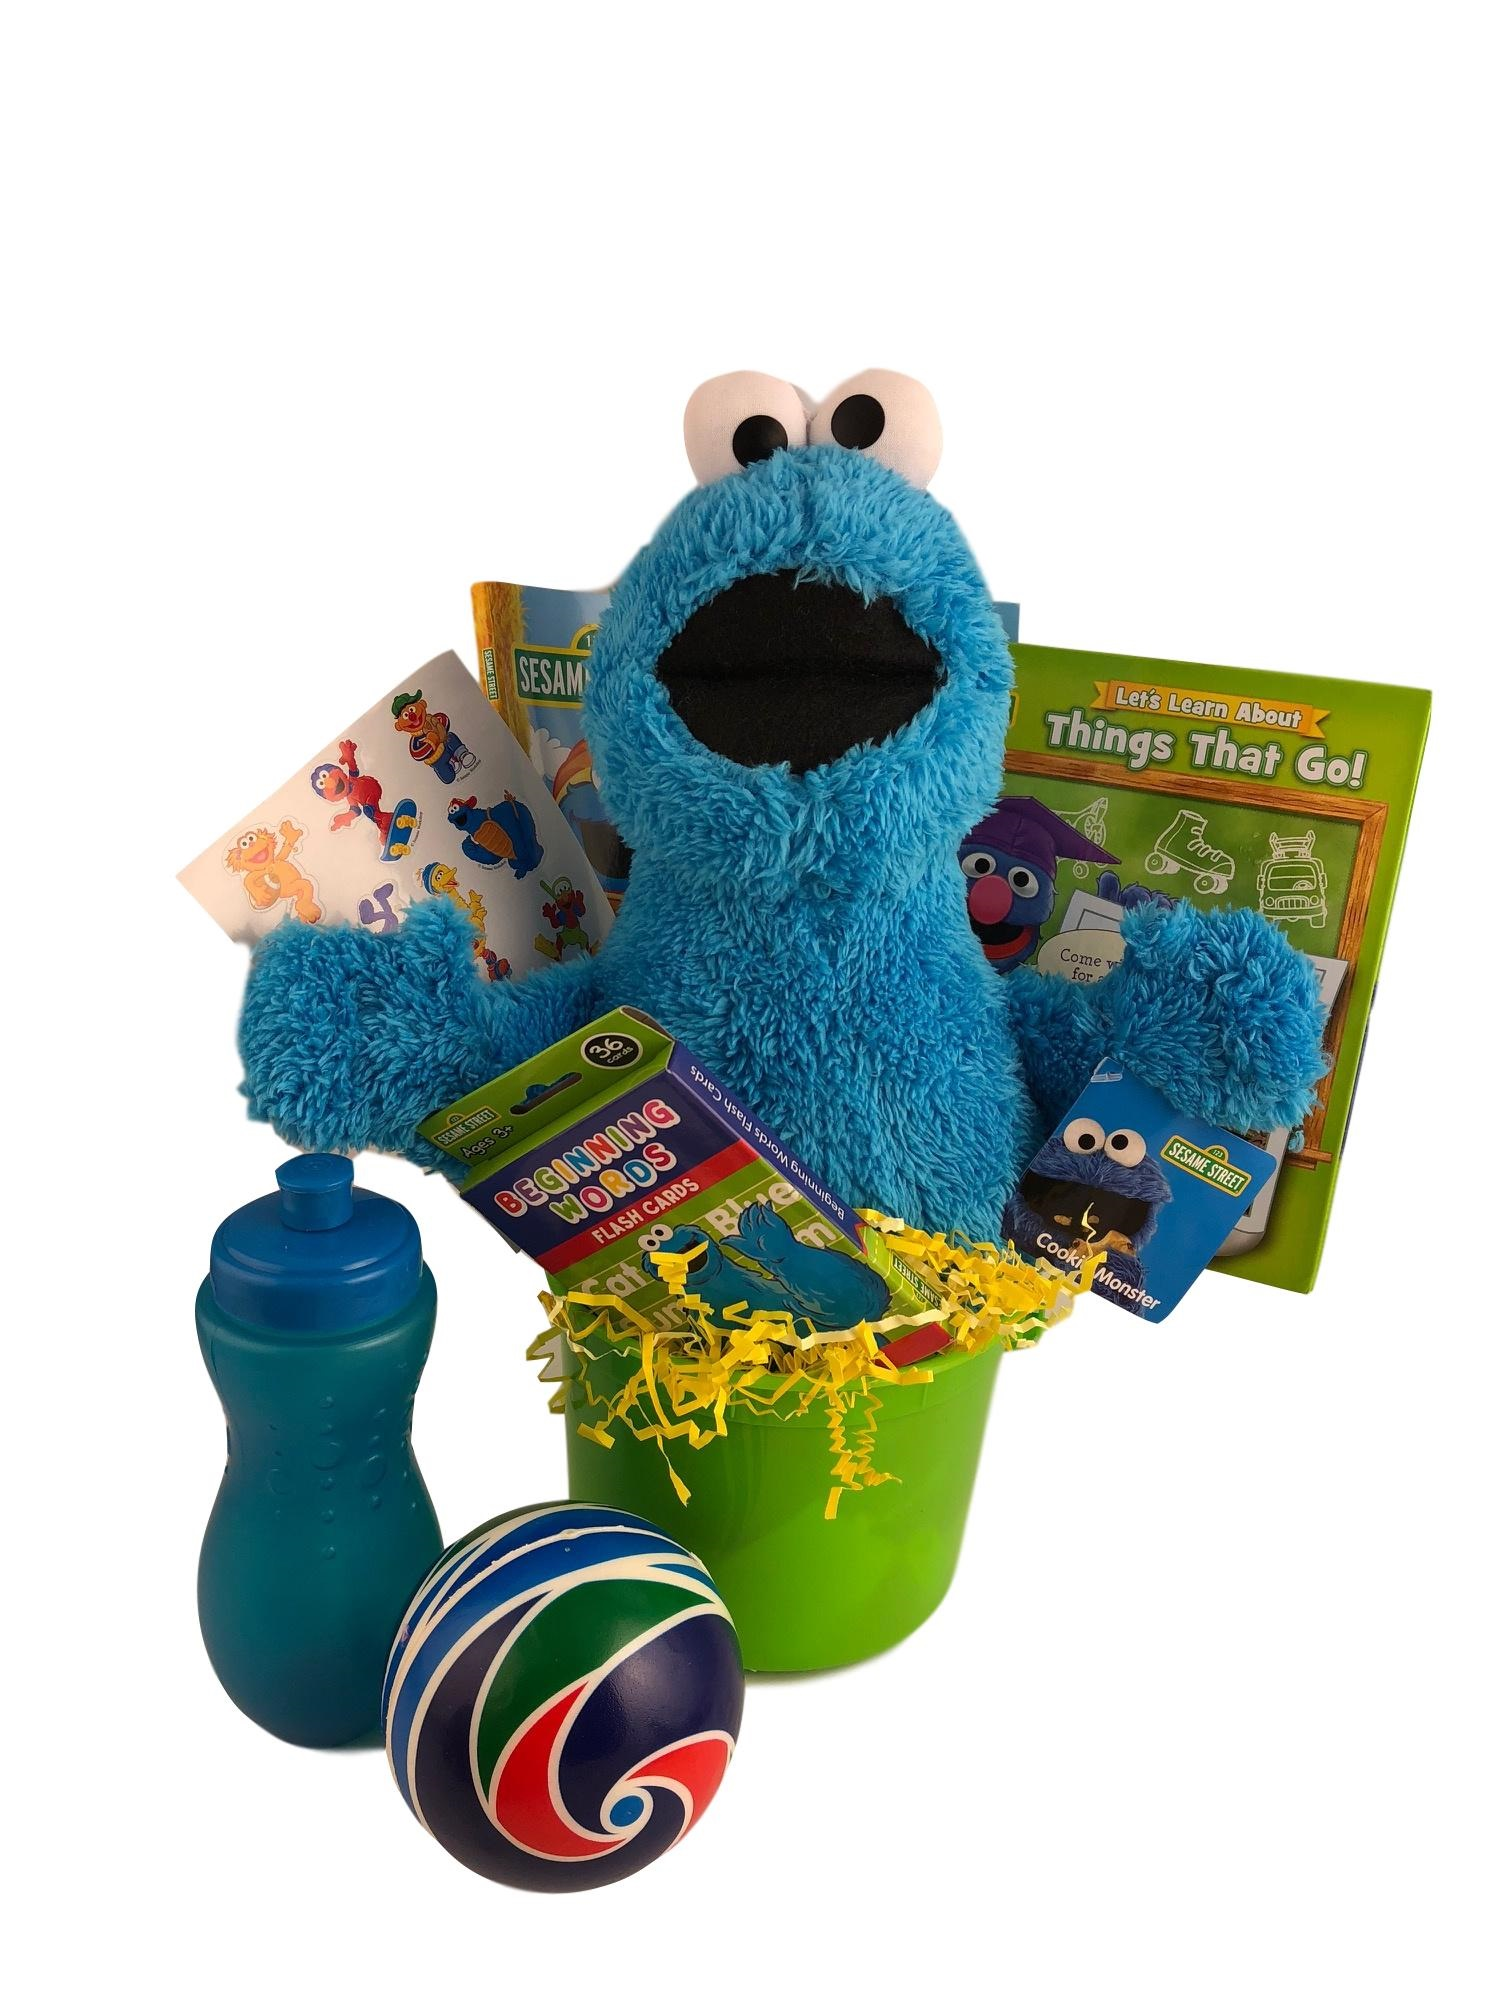 Kids Themed Cookie Monster Gift Basket Sesame Street For Birthdays Holidays Care Package Cookie Monster Plush... by